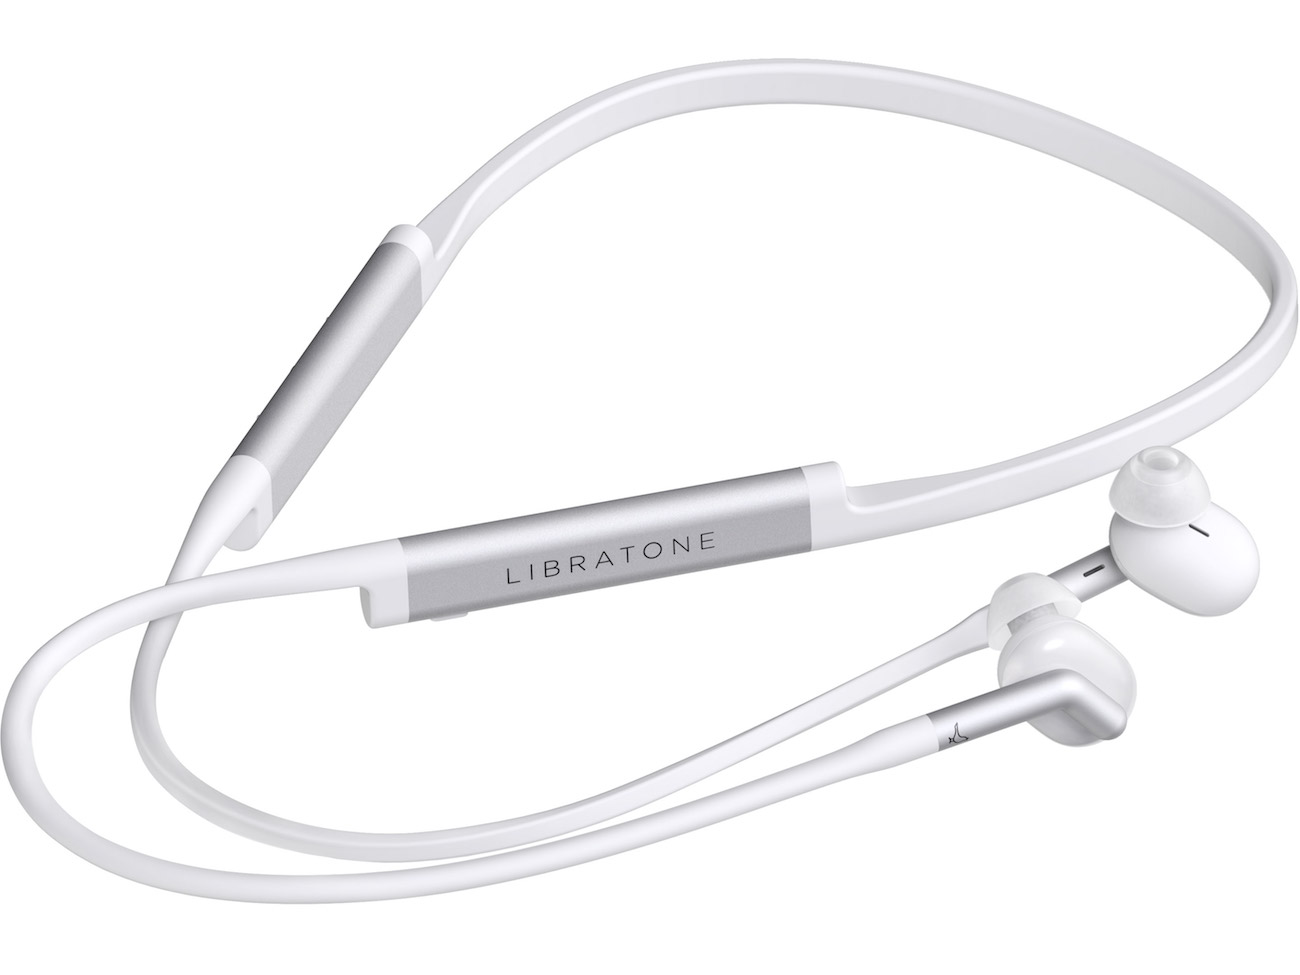 Libratone TRACK+ Wireless Noise-Canceling Earbuds